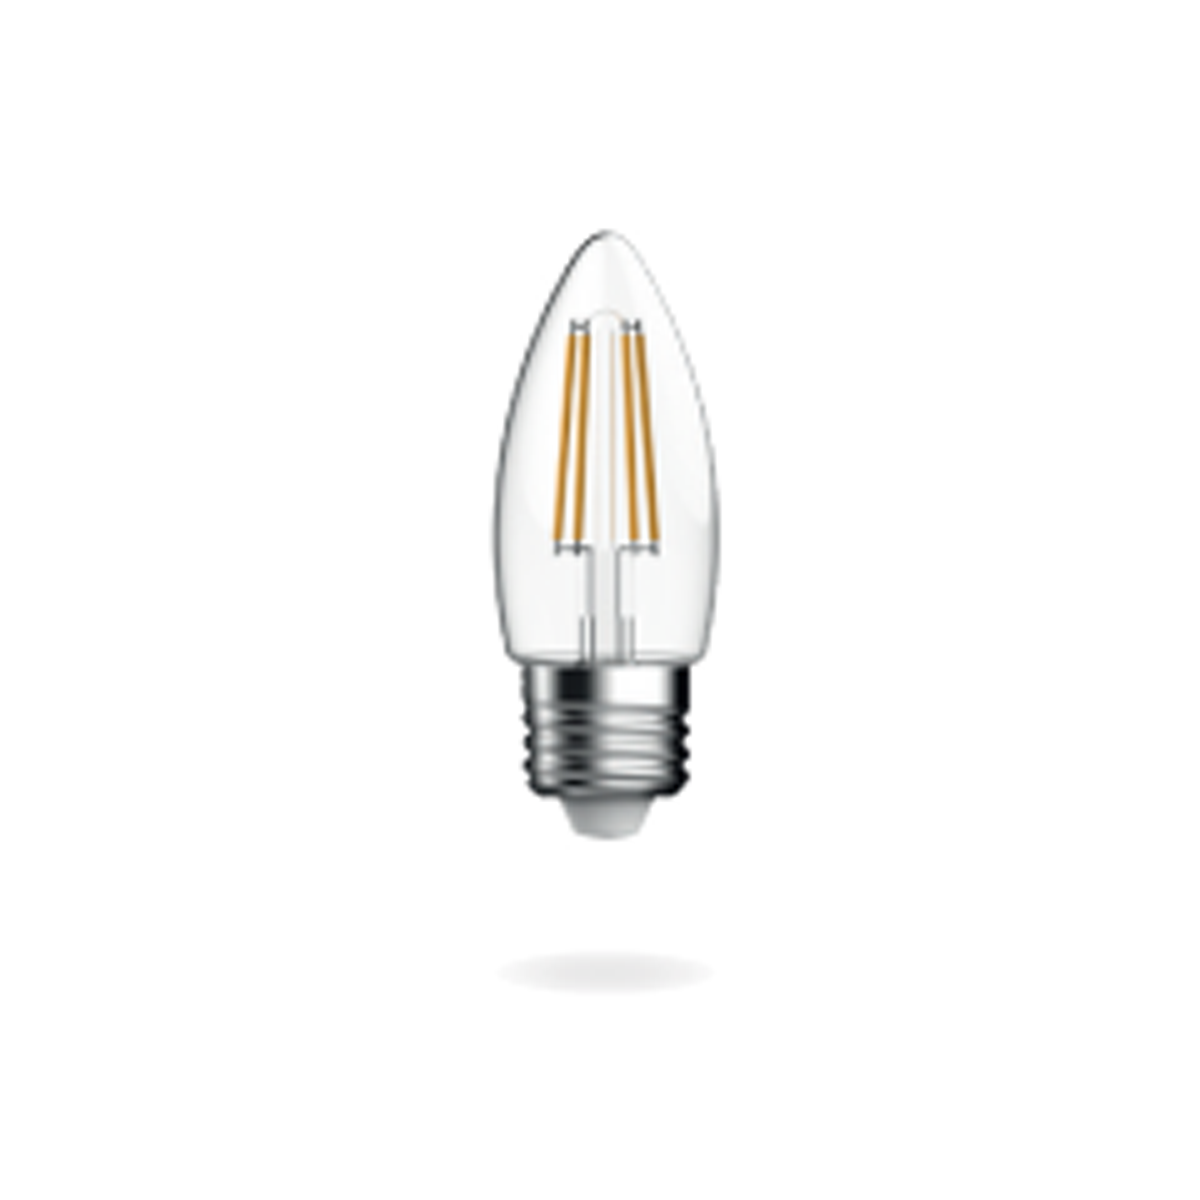 Energetic Candle E27 Dimmable Cool White 4.8W